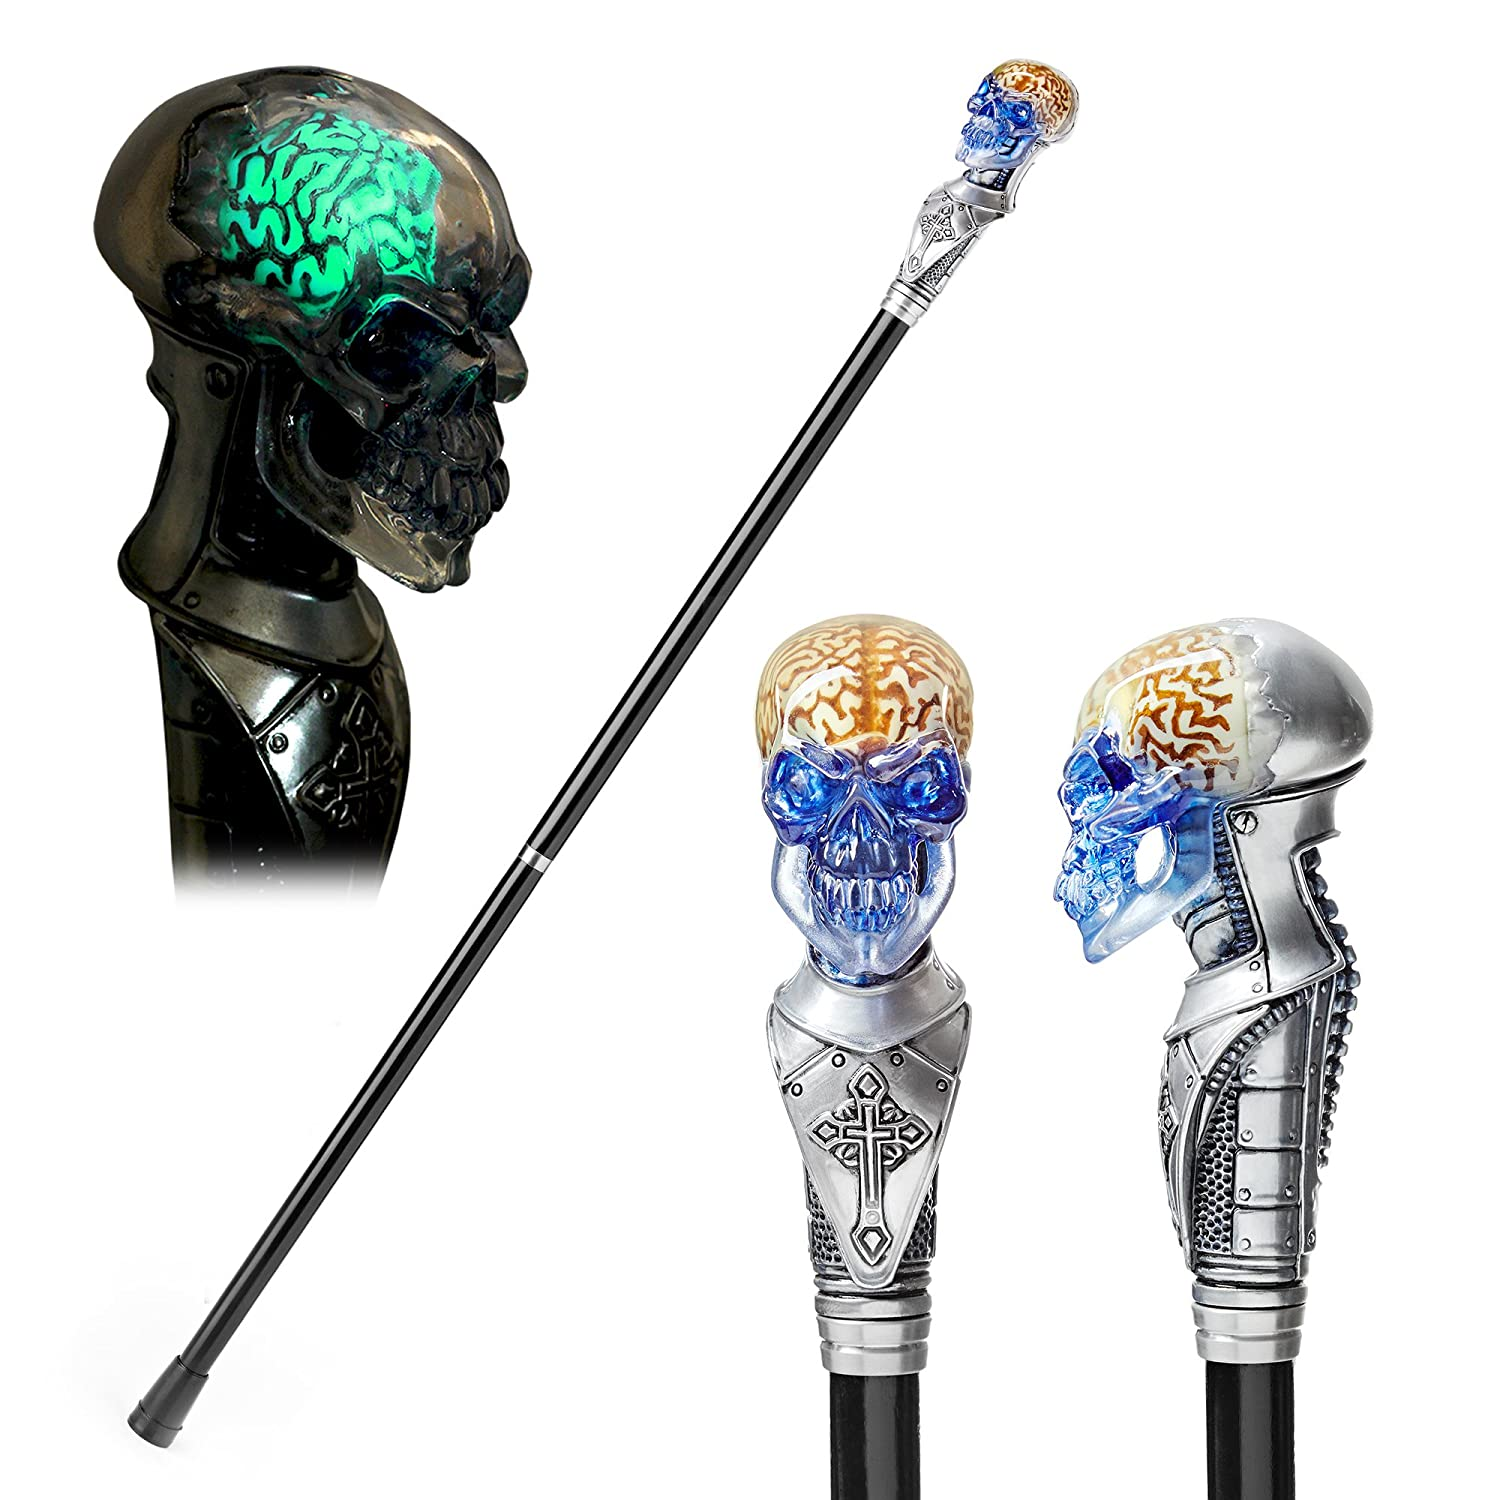 GC-Artis Skull Walking Stick Cane Glowing Silver Color Knob Handle Steampunk Halloween Party Black Wooden Shaft Folding 36''